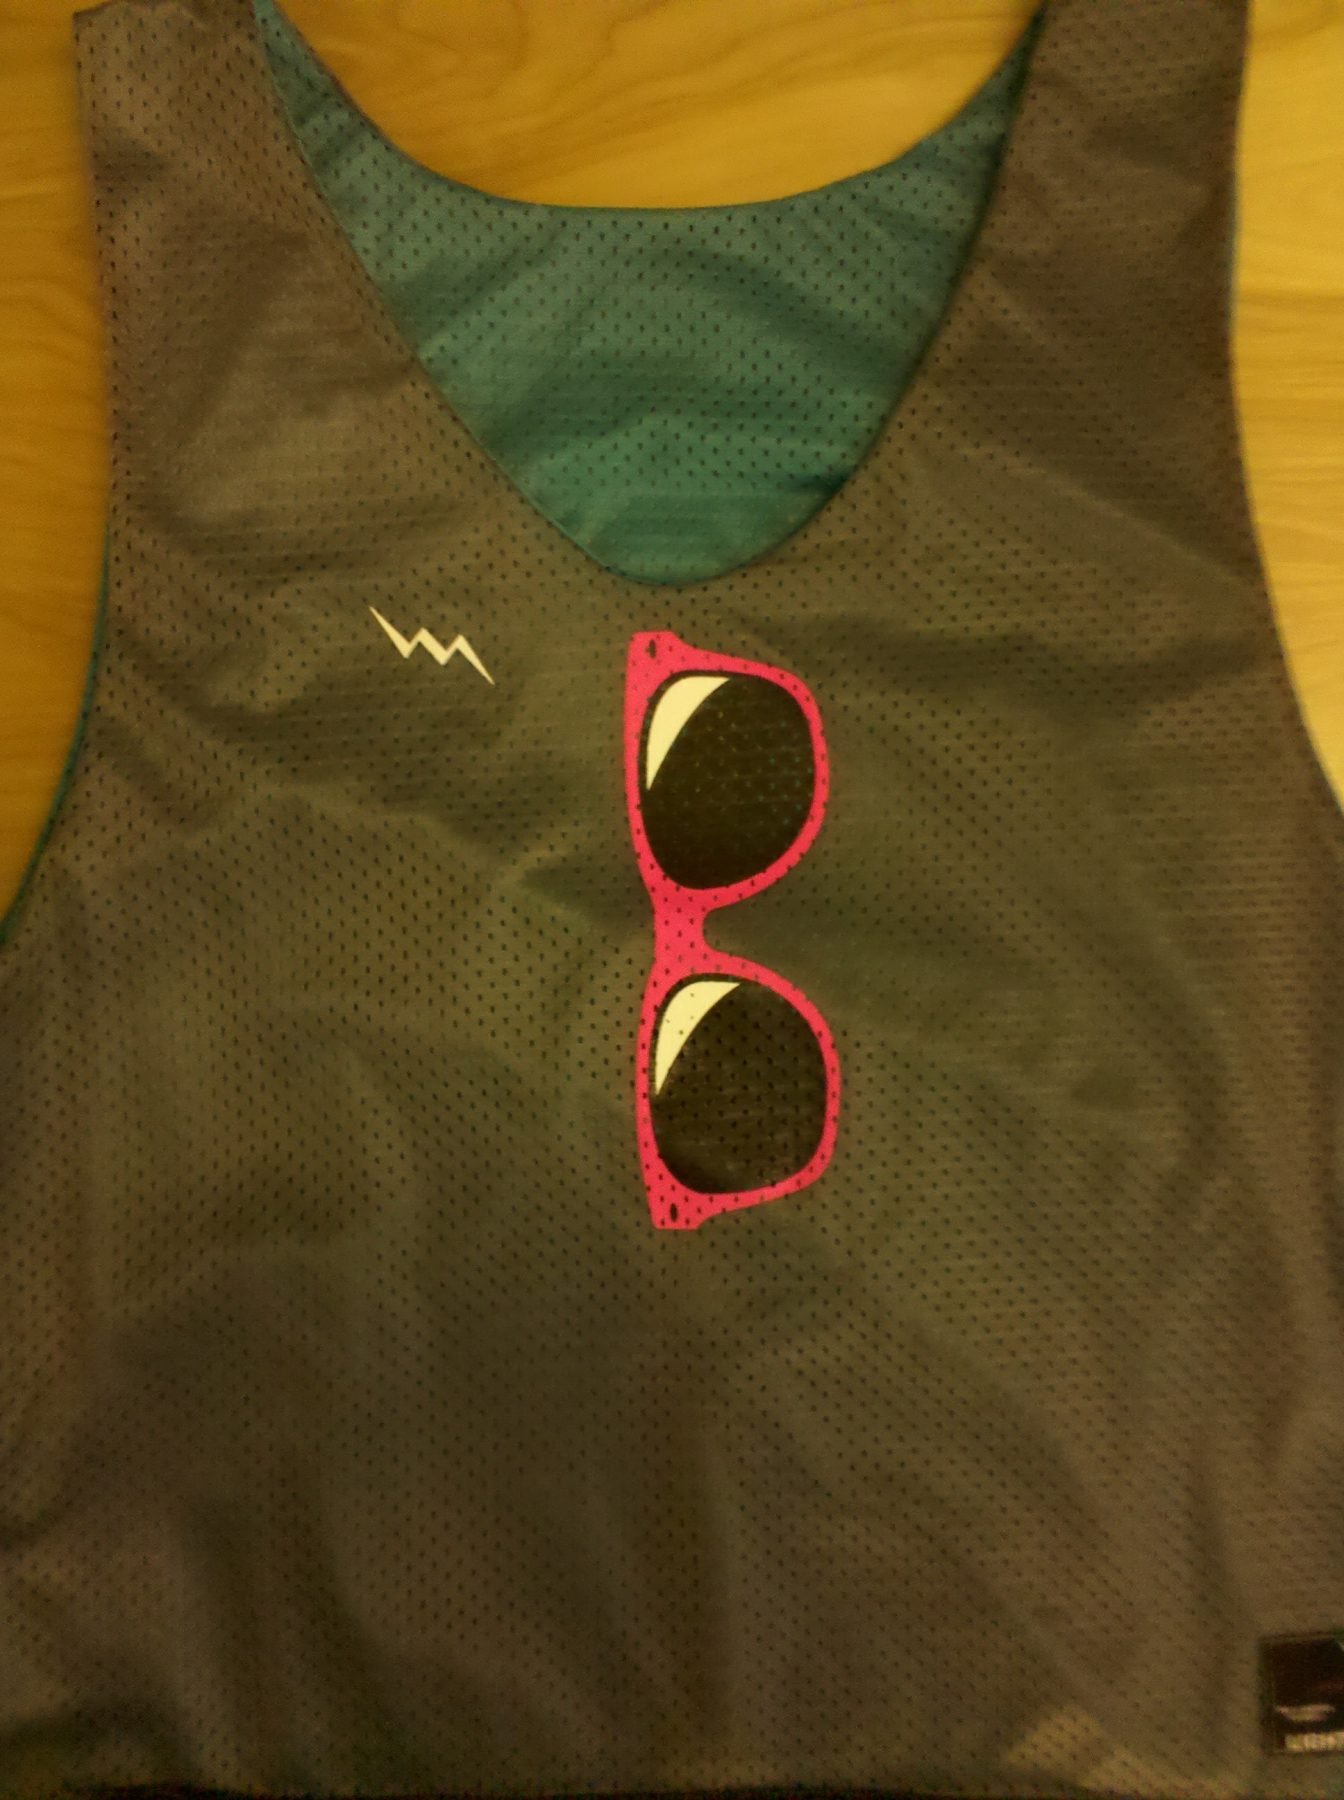 sunglass pinnies